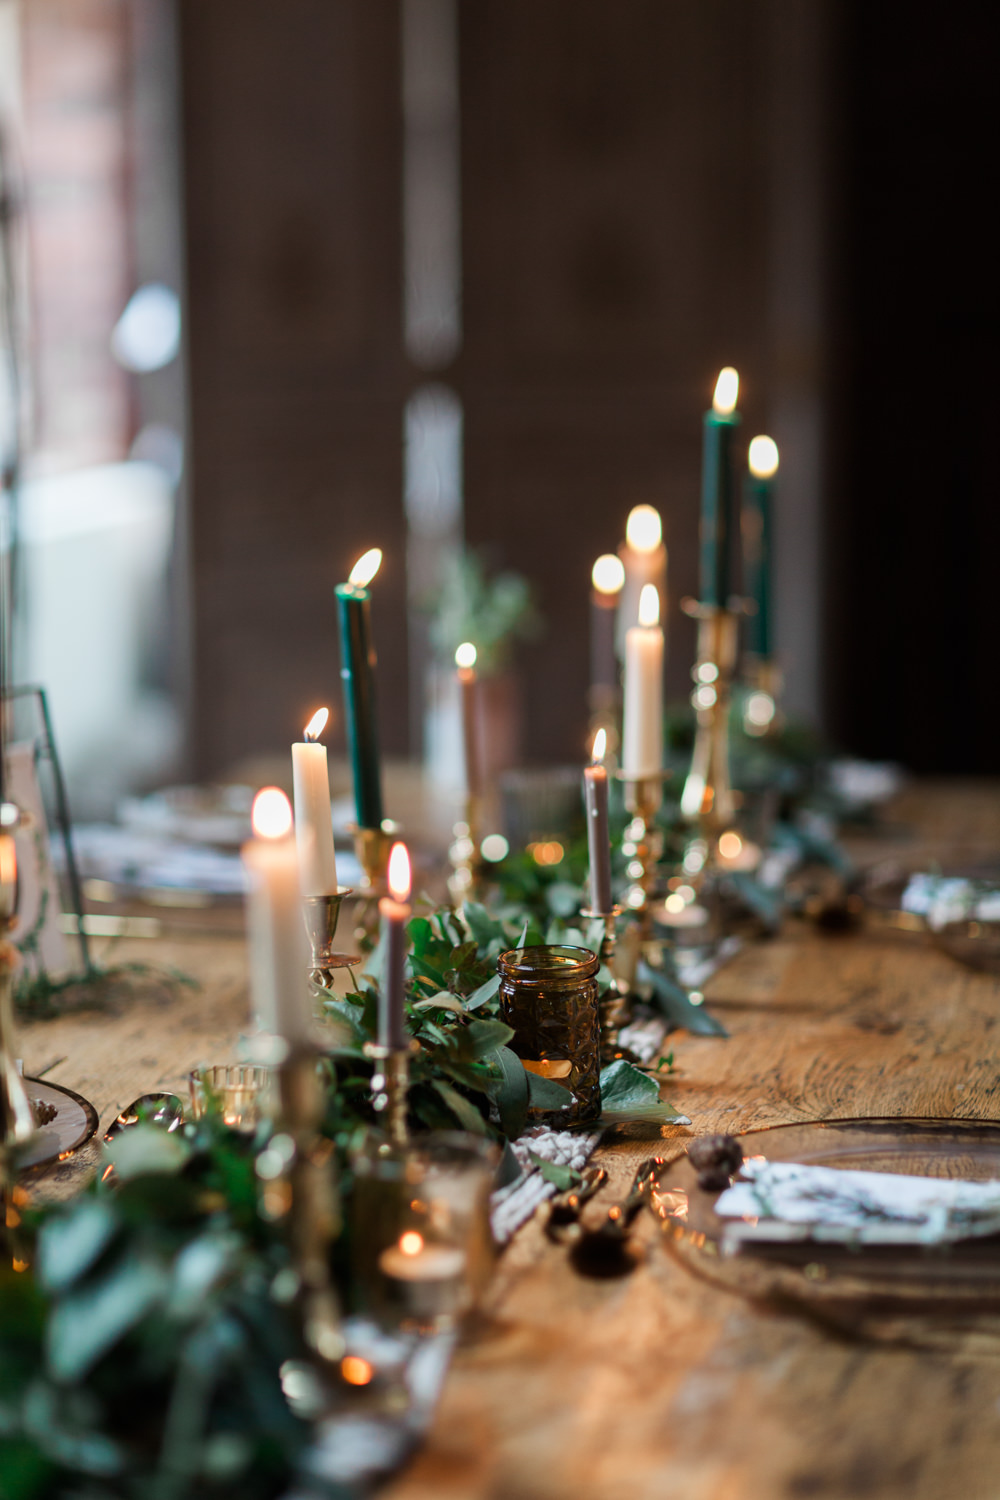 Table Tablescape Candles Greenery Runner Botanical Macrame Glass House Wedding Ideas Jo Bradbury Photography